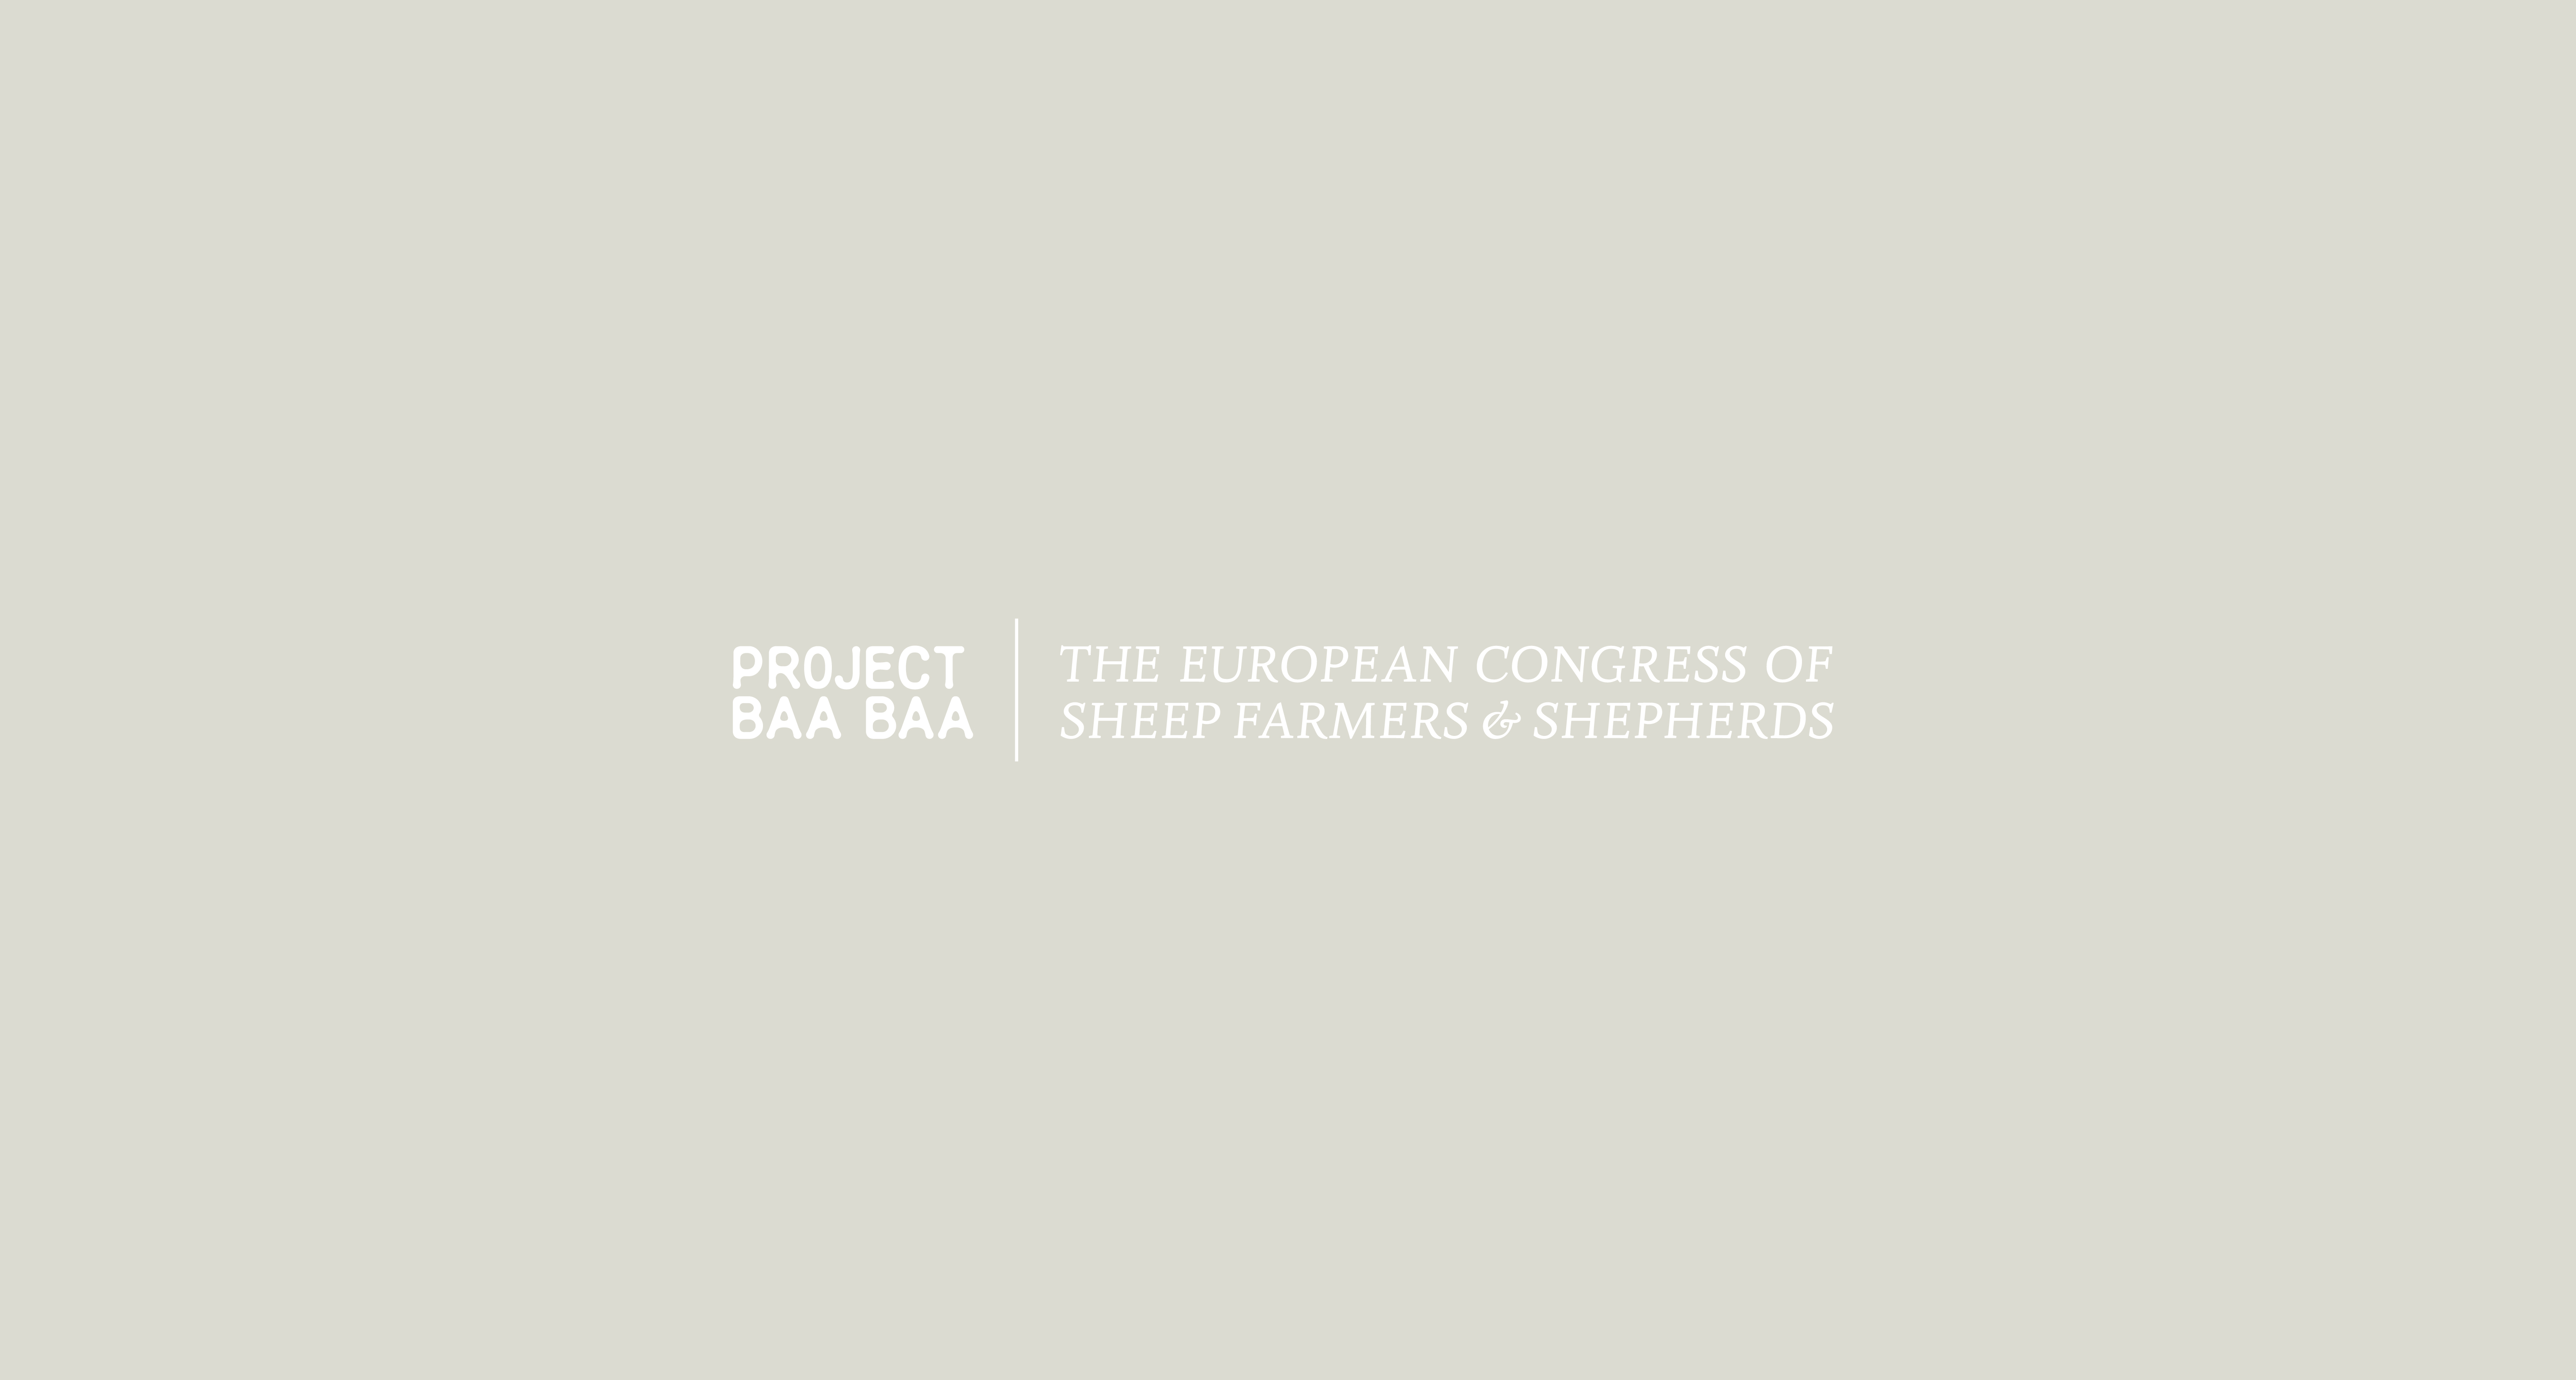 Cover image: Project Baa Baa | The European Congress of sheep farmers and shepherds